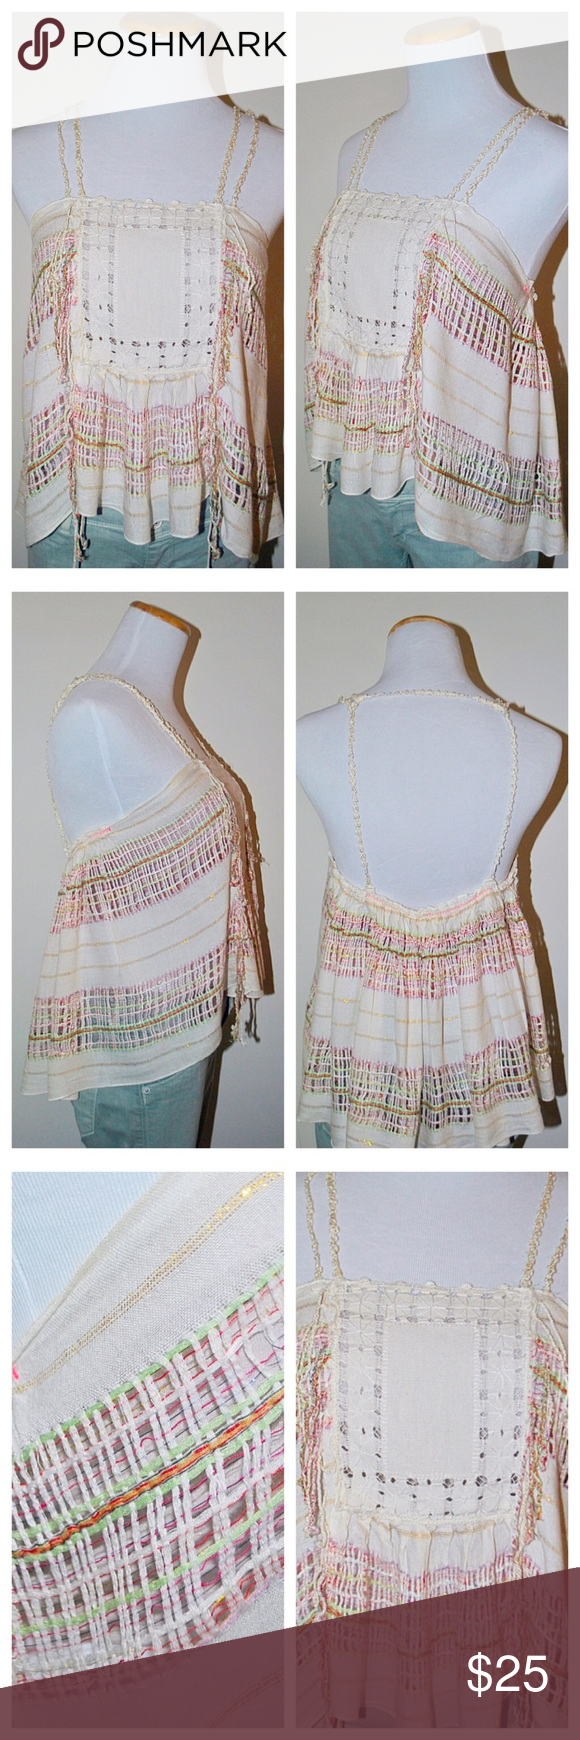 🆕FREE PEOPLE Woven & Fringe Cream Top New Romantics Cream with rainbow and shimmer woven strings. Very intricate and delicate detail on this stunning top. 93% Viscose 6% cotton 1% Metallic, Hand Wash Cold. Free People Tops